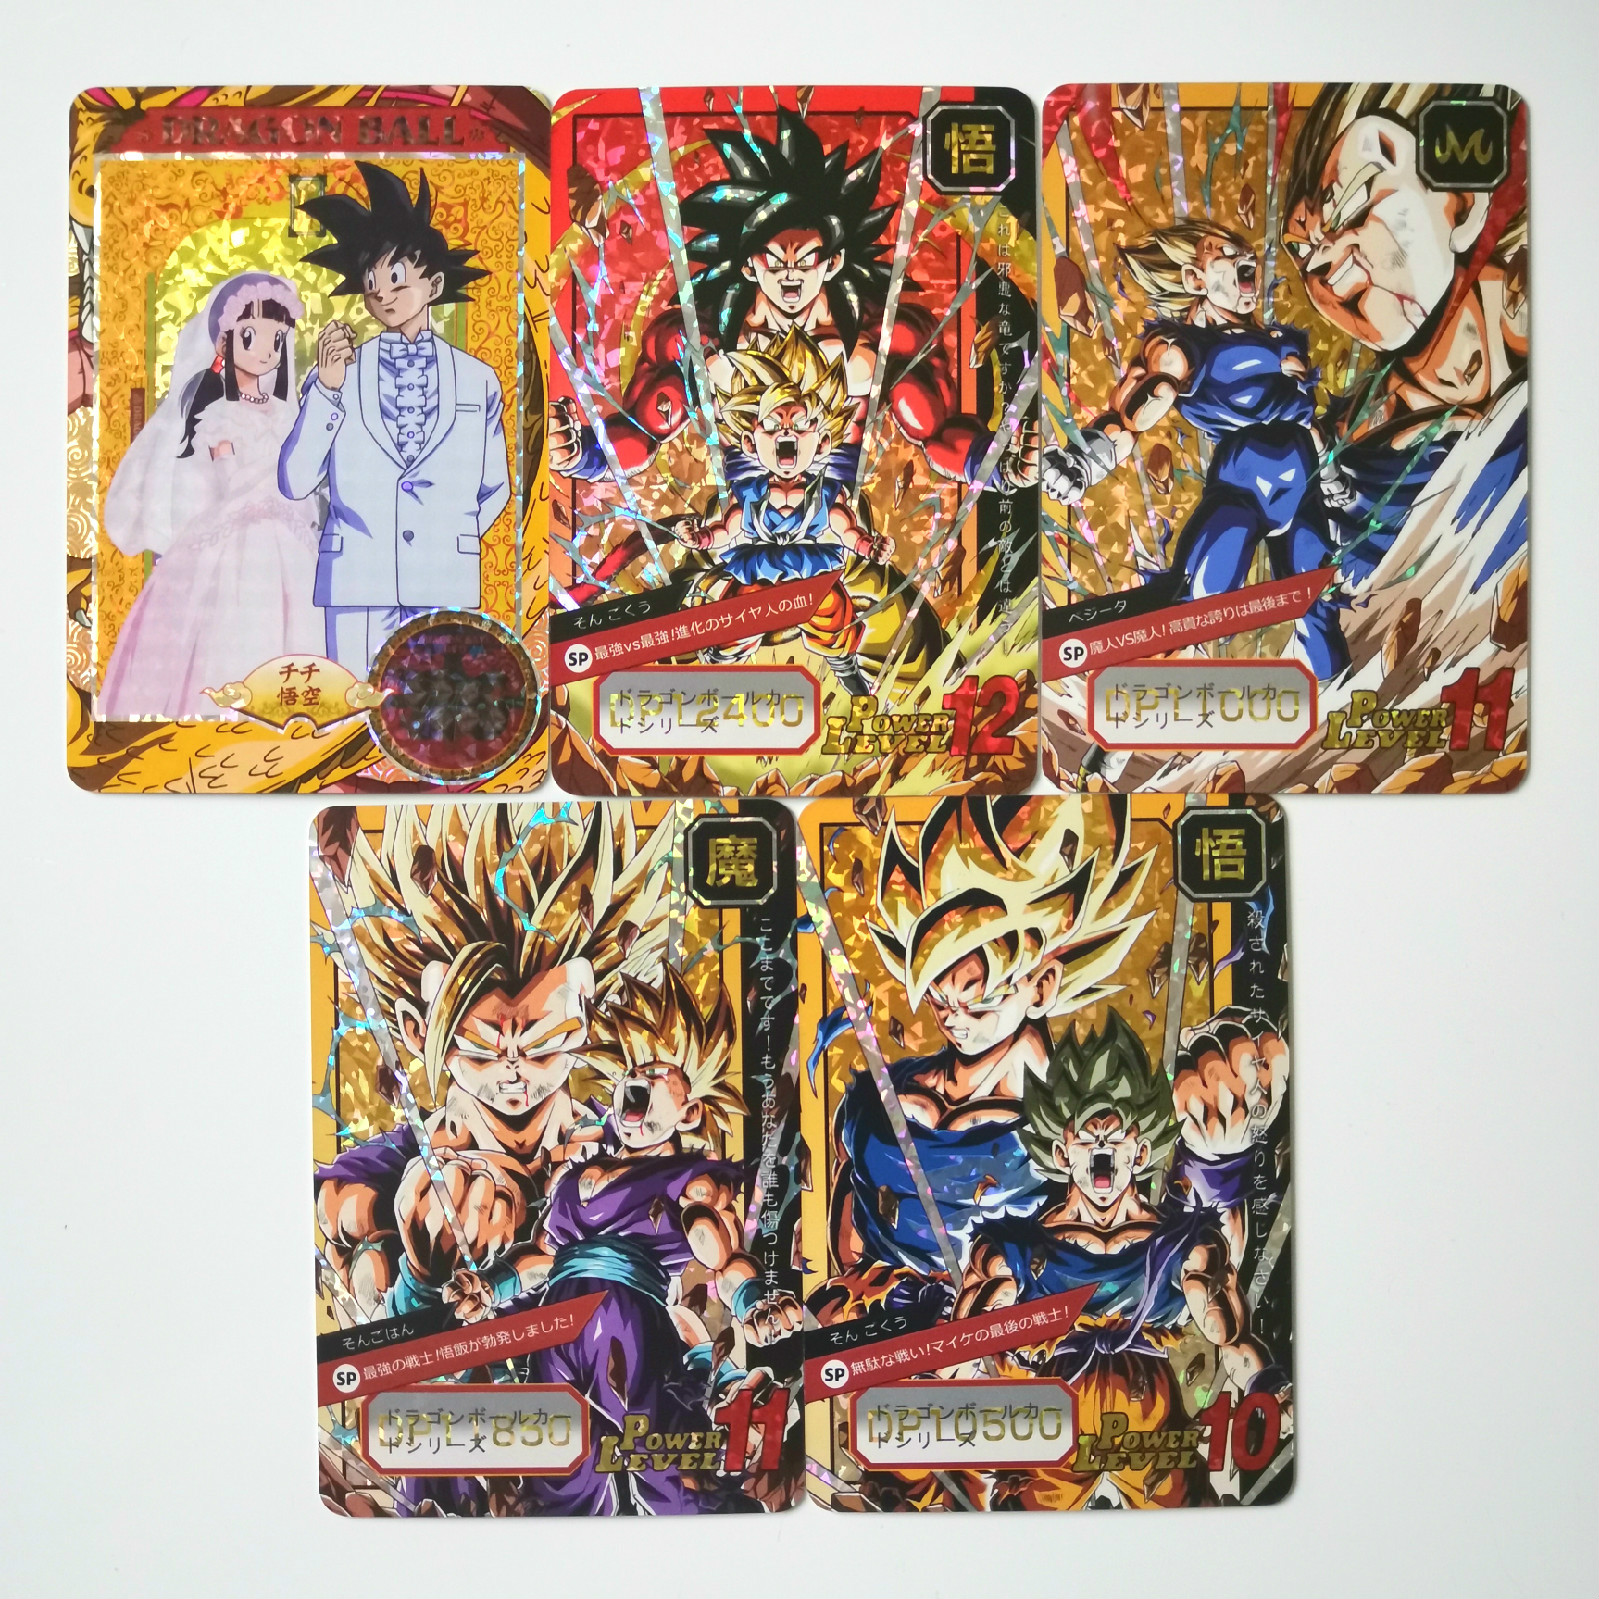 5pcs/set Super Dragon Ball Z Marry Heroes Battle Card Ultra Instinct Goku Vegeta Game Collection Cards